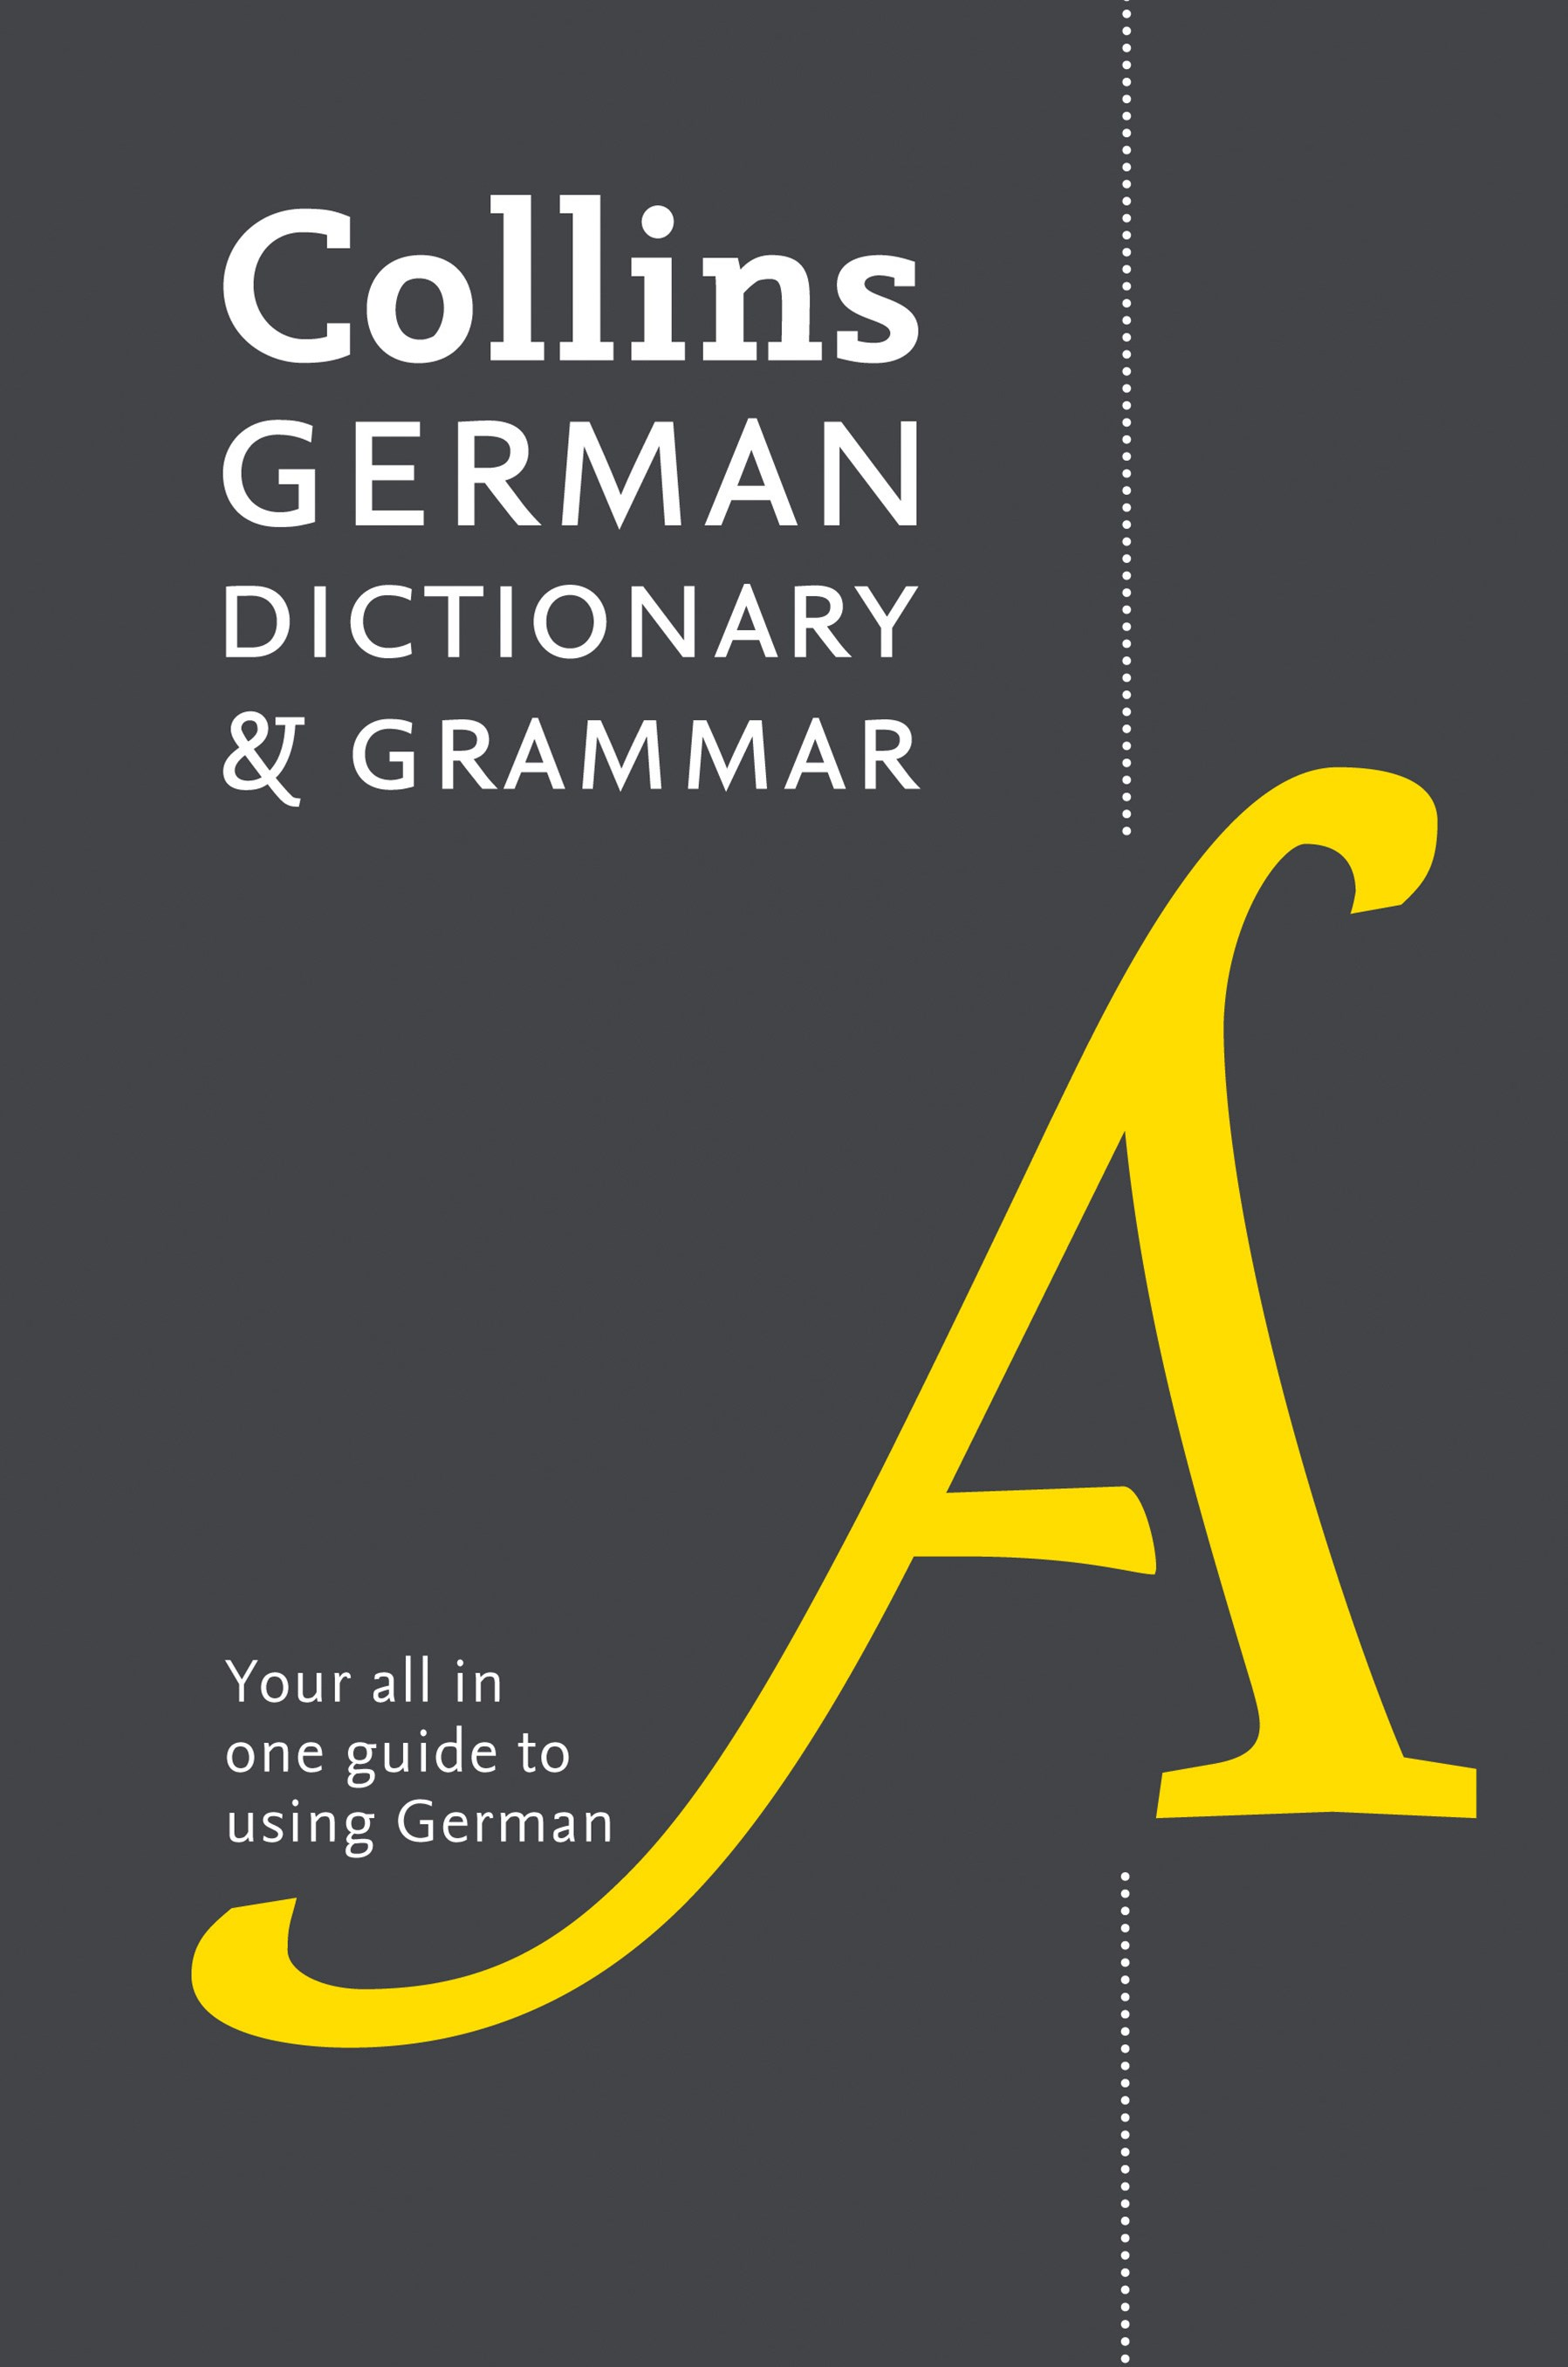 Collins German Dictionary and Grammar [7th Edition]